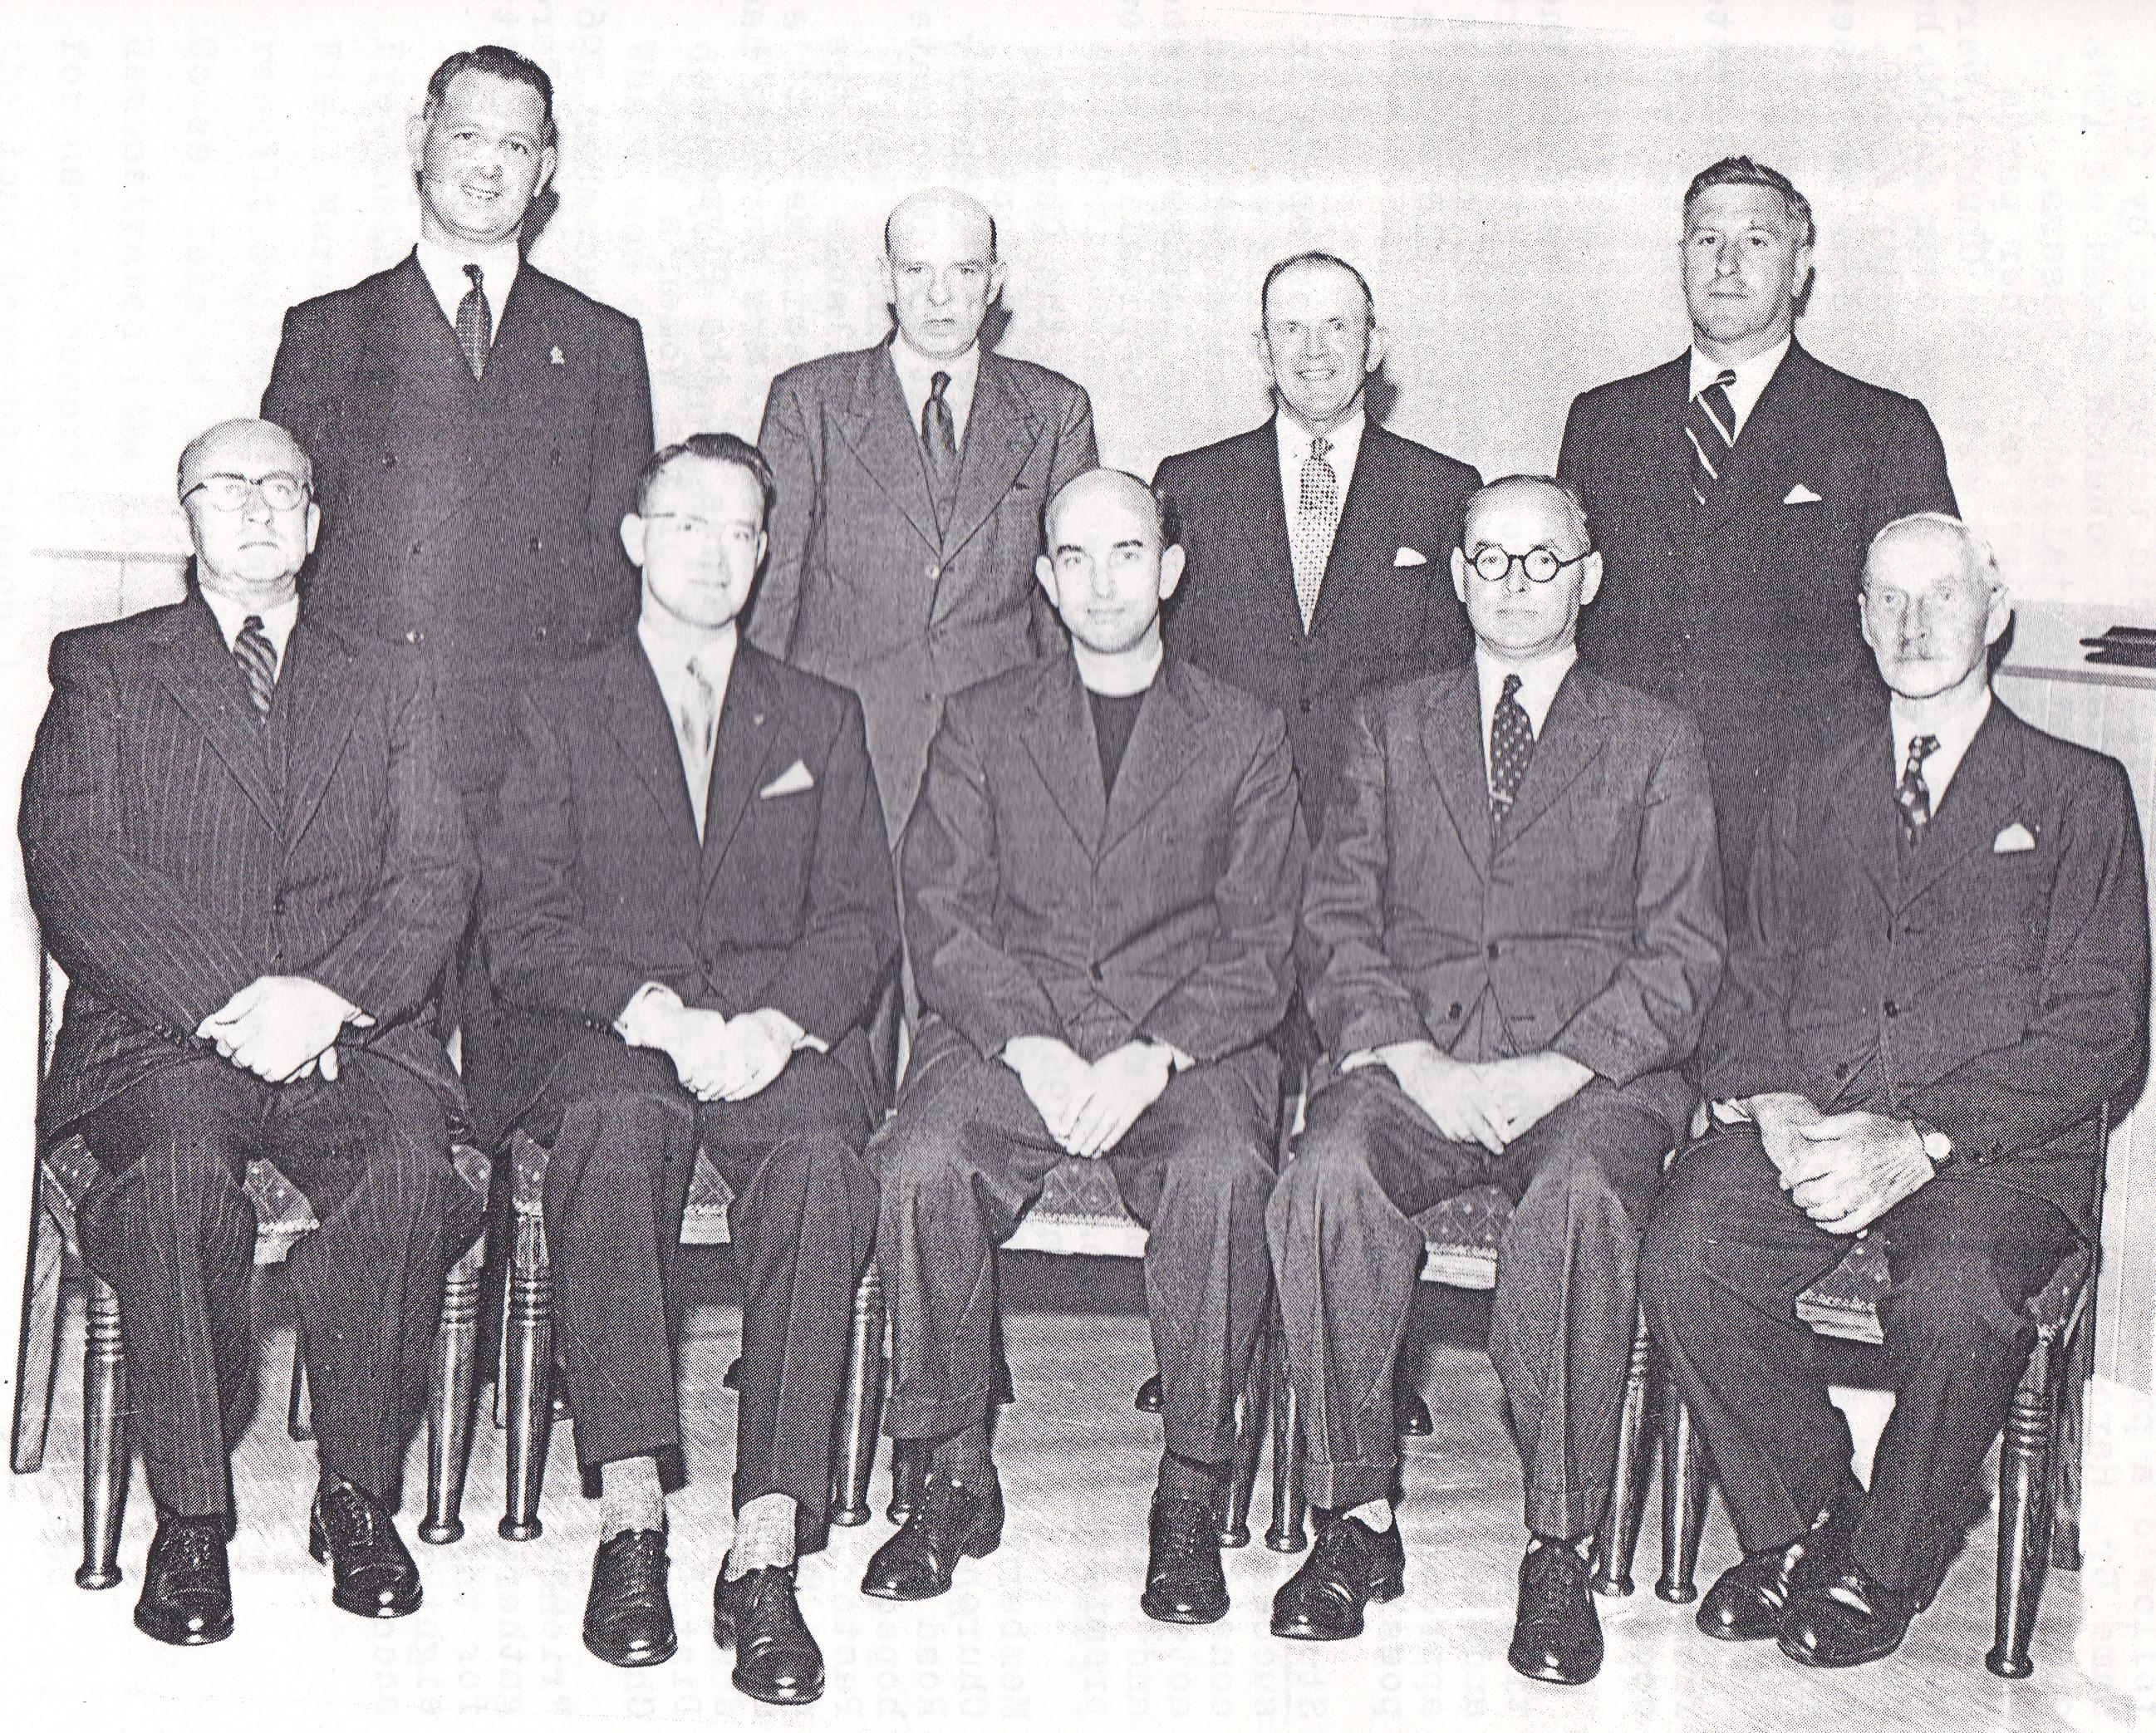 Rev Merrett and the Deacons, (Standing L - R) Mr Hellyer, Mr Keast, Mr H Bray, Mr Hitt, (Sitting L - R) Mr Rich, Mr R. Bray, Rev Merrett, Mr D Beavington and Mr F Beavington.  1958